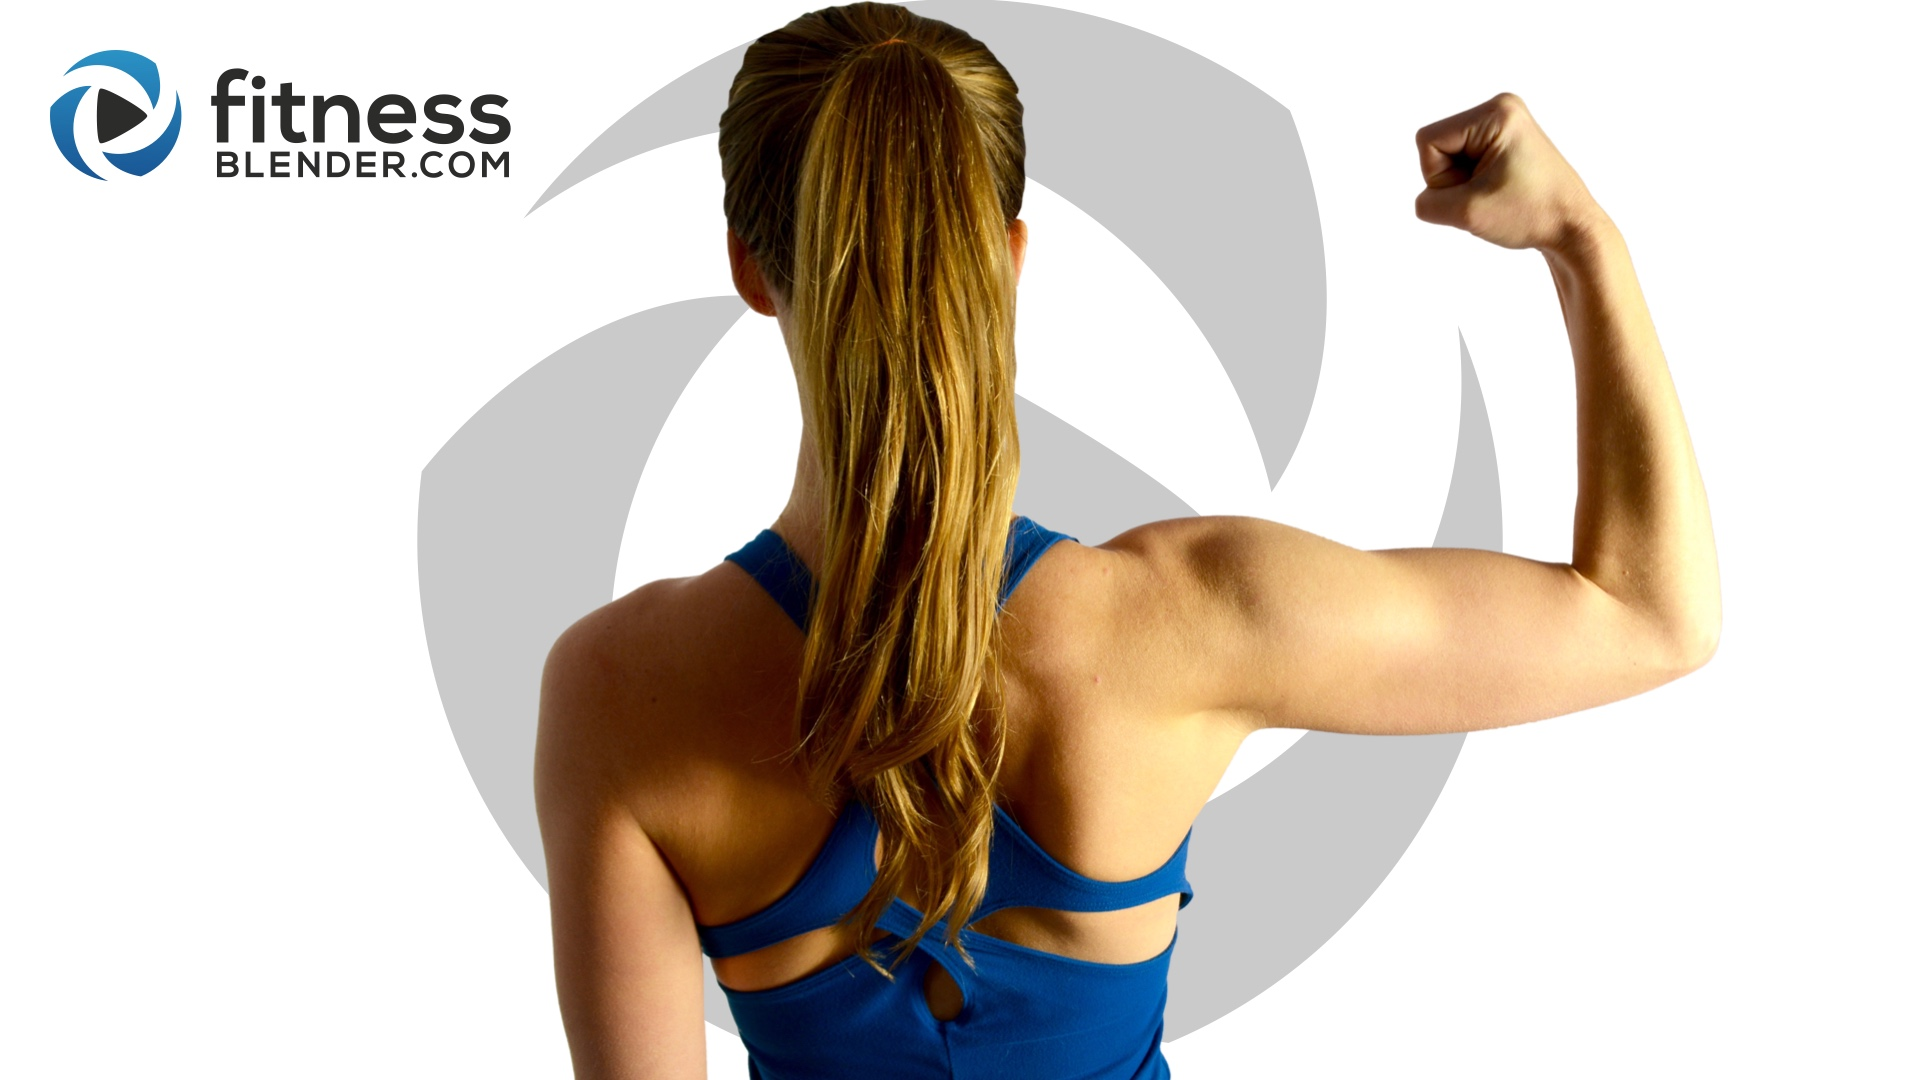 10 Minute No Equipment Upper Body Workout Complete Without Weights Fitness Blender